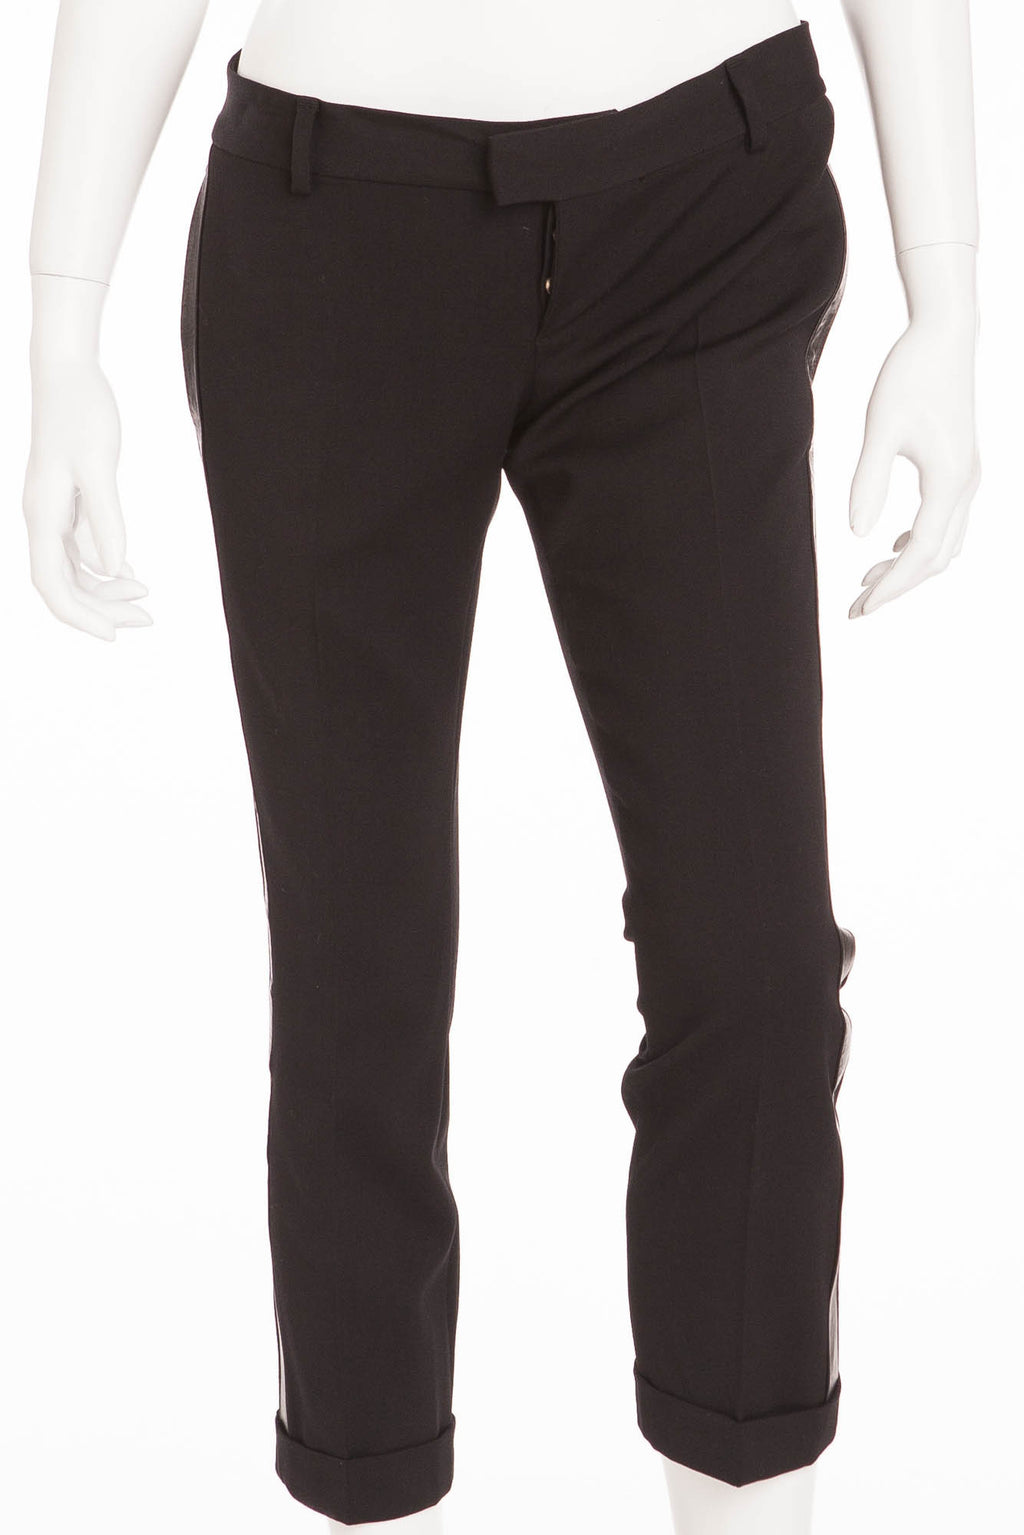 Dsquared2 - Black Pants with Leather Trim - IT 42